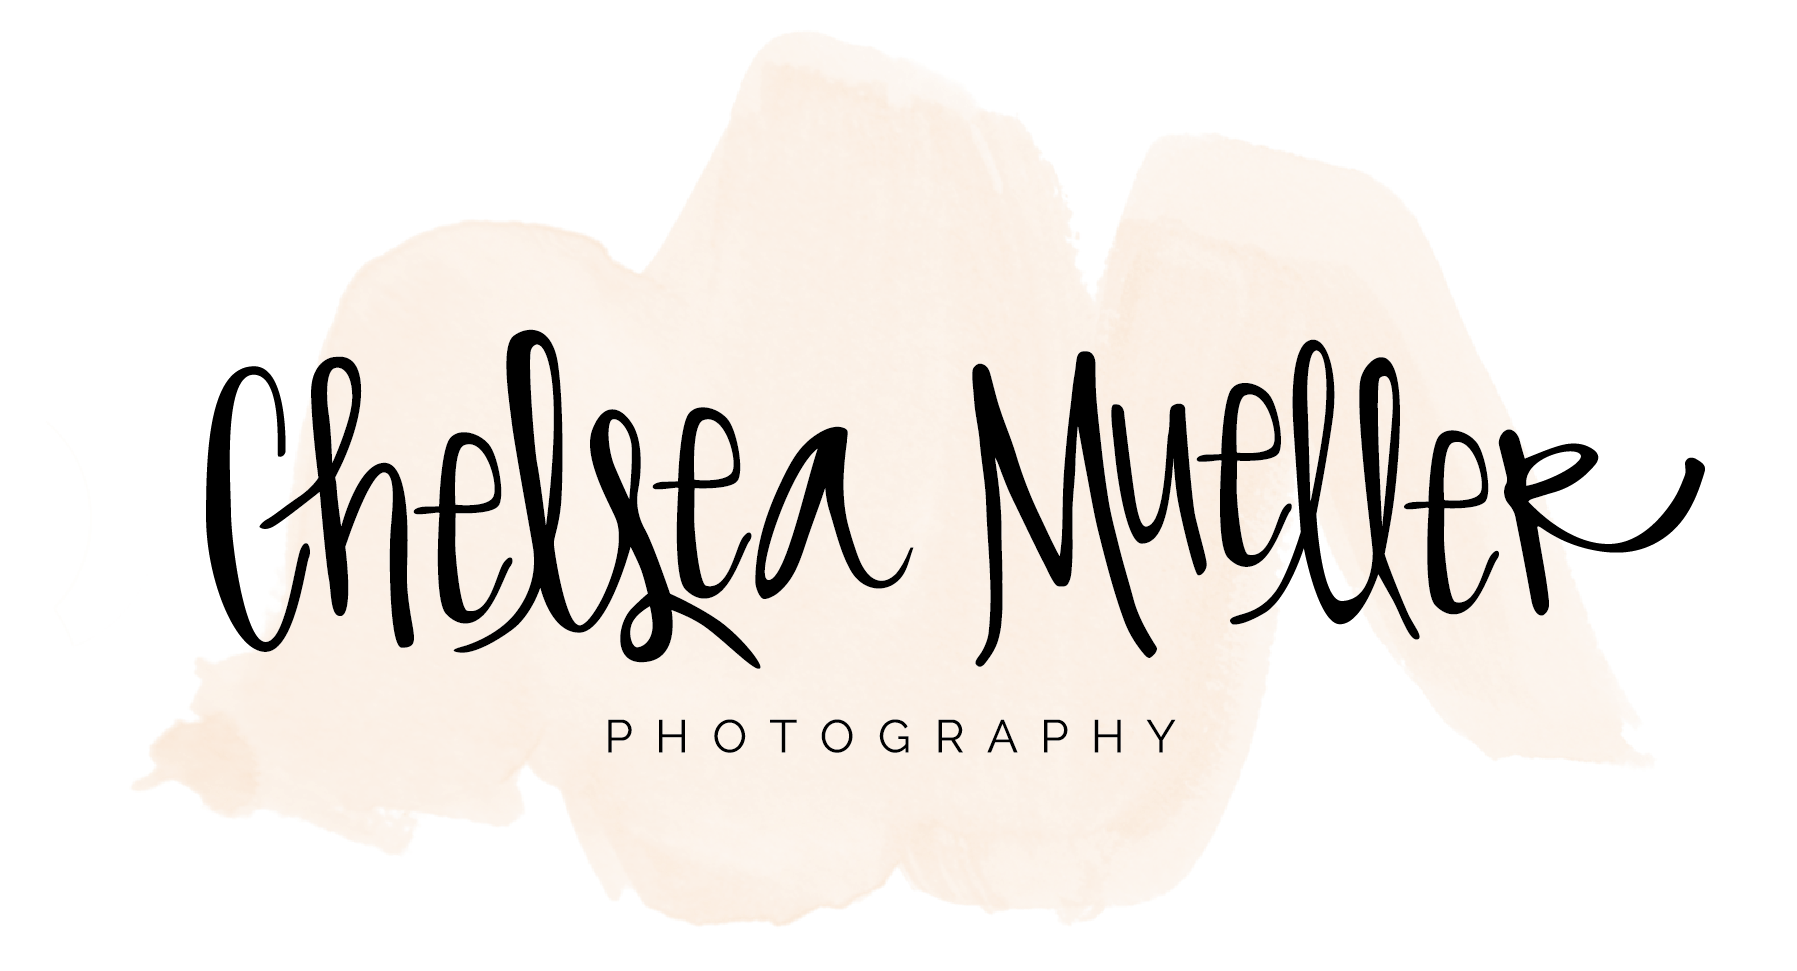 Chelsea Mueller Photography